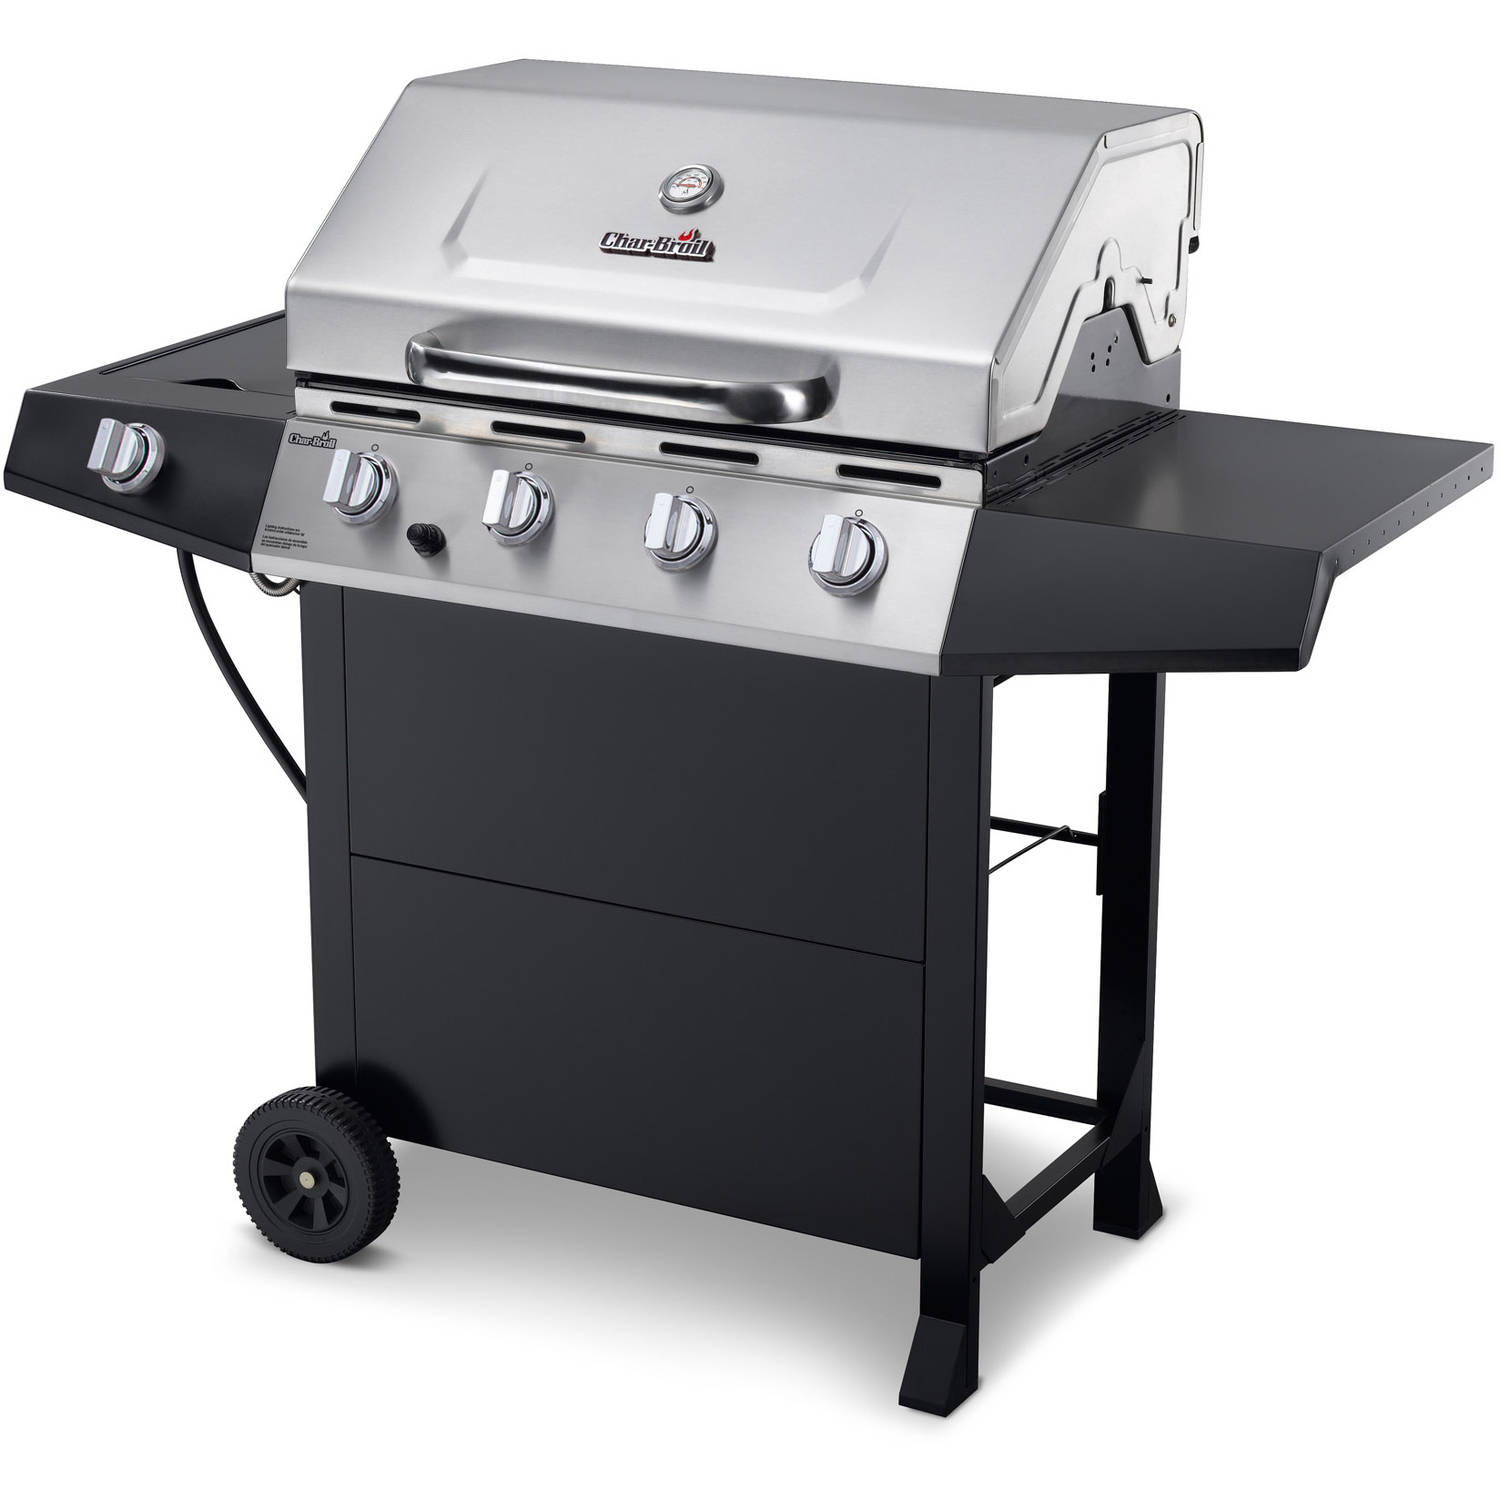 Char-Broil 4-Burner Gas Grill, Stainless Steel/Black